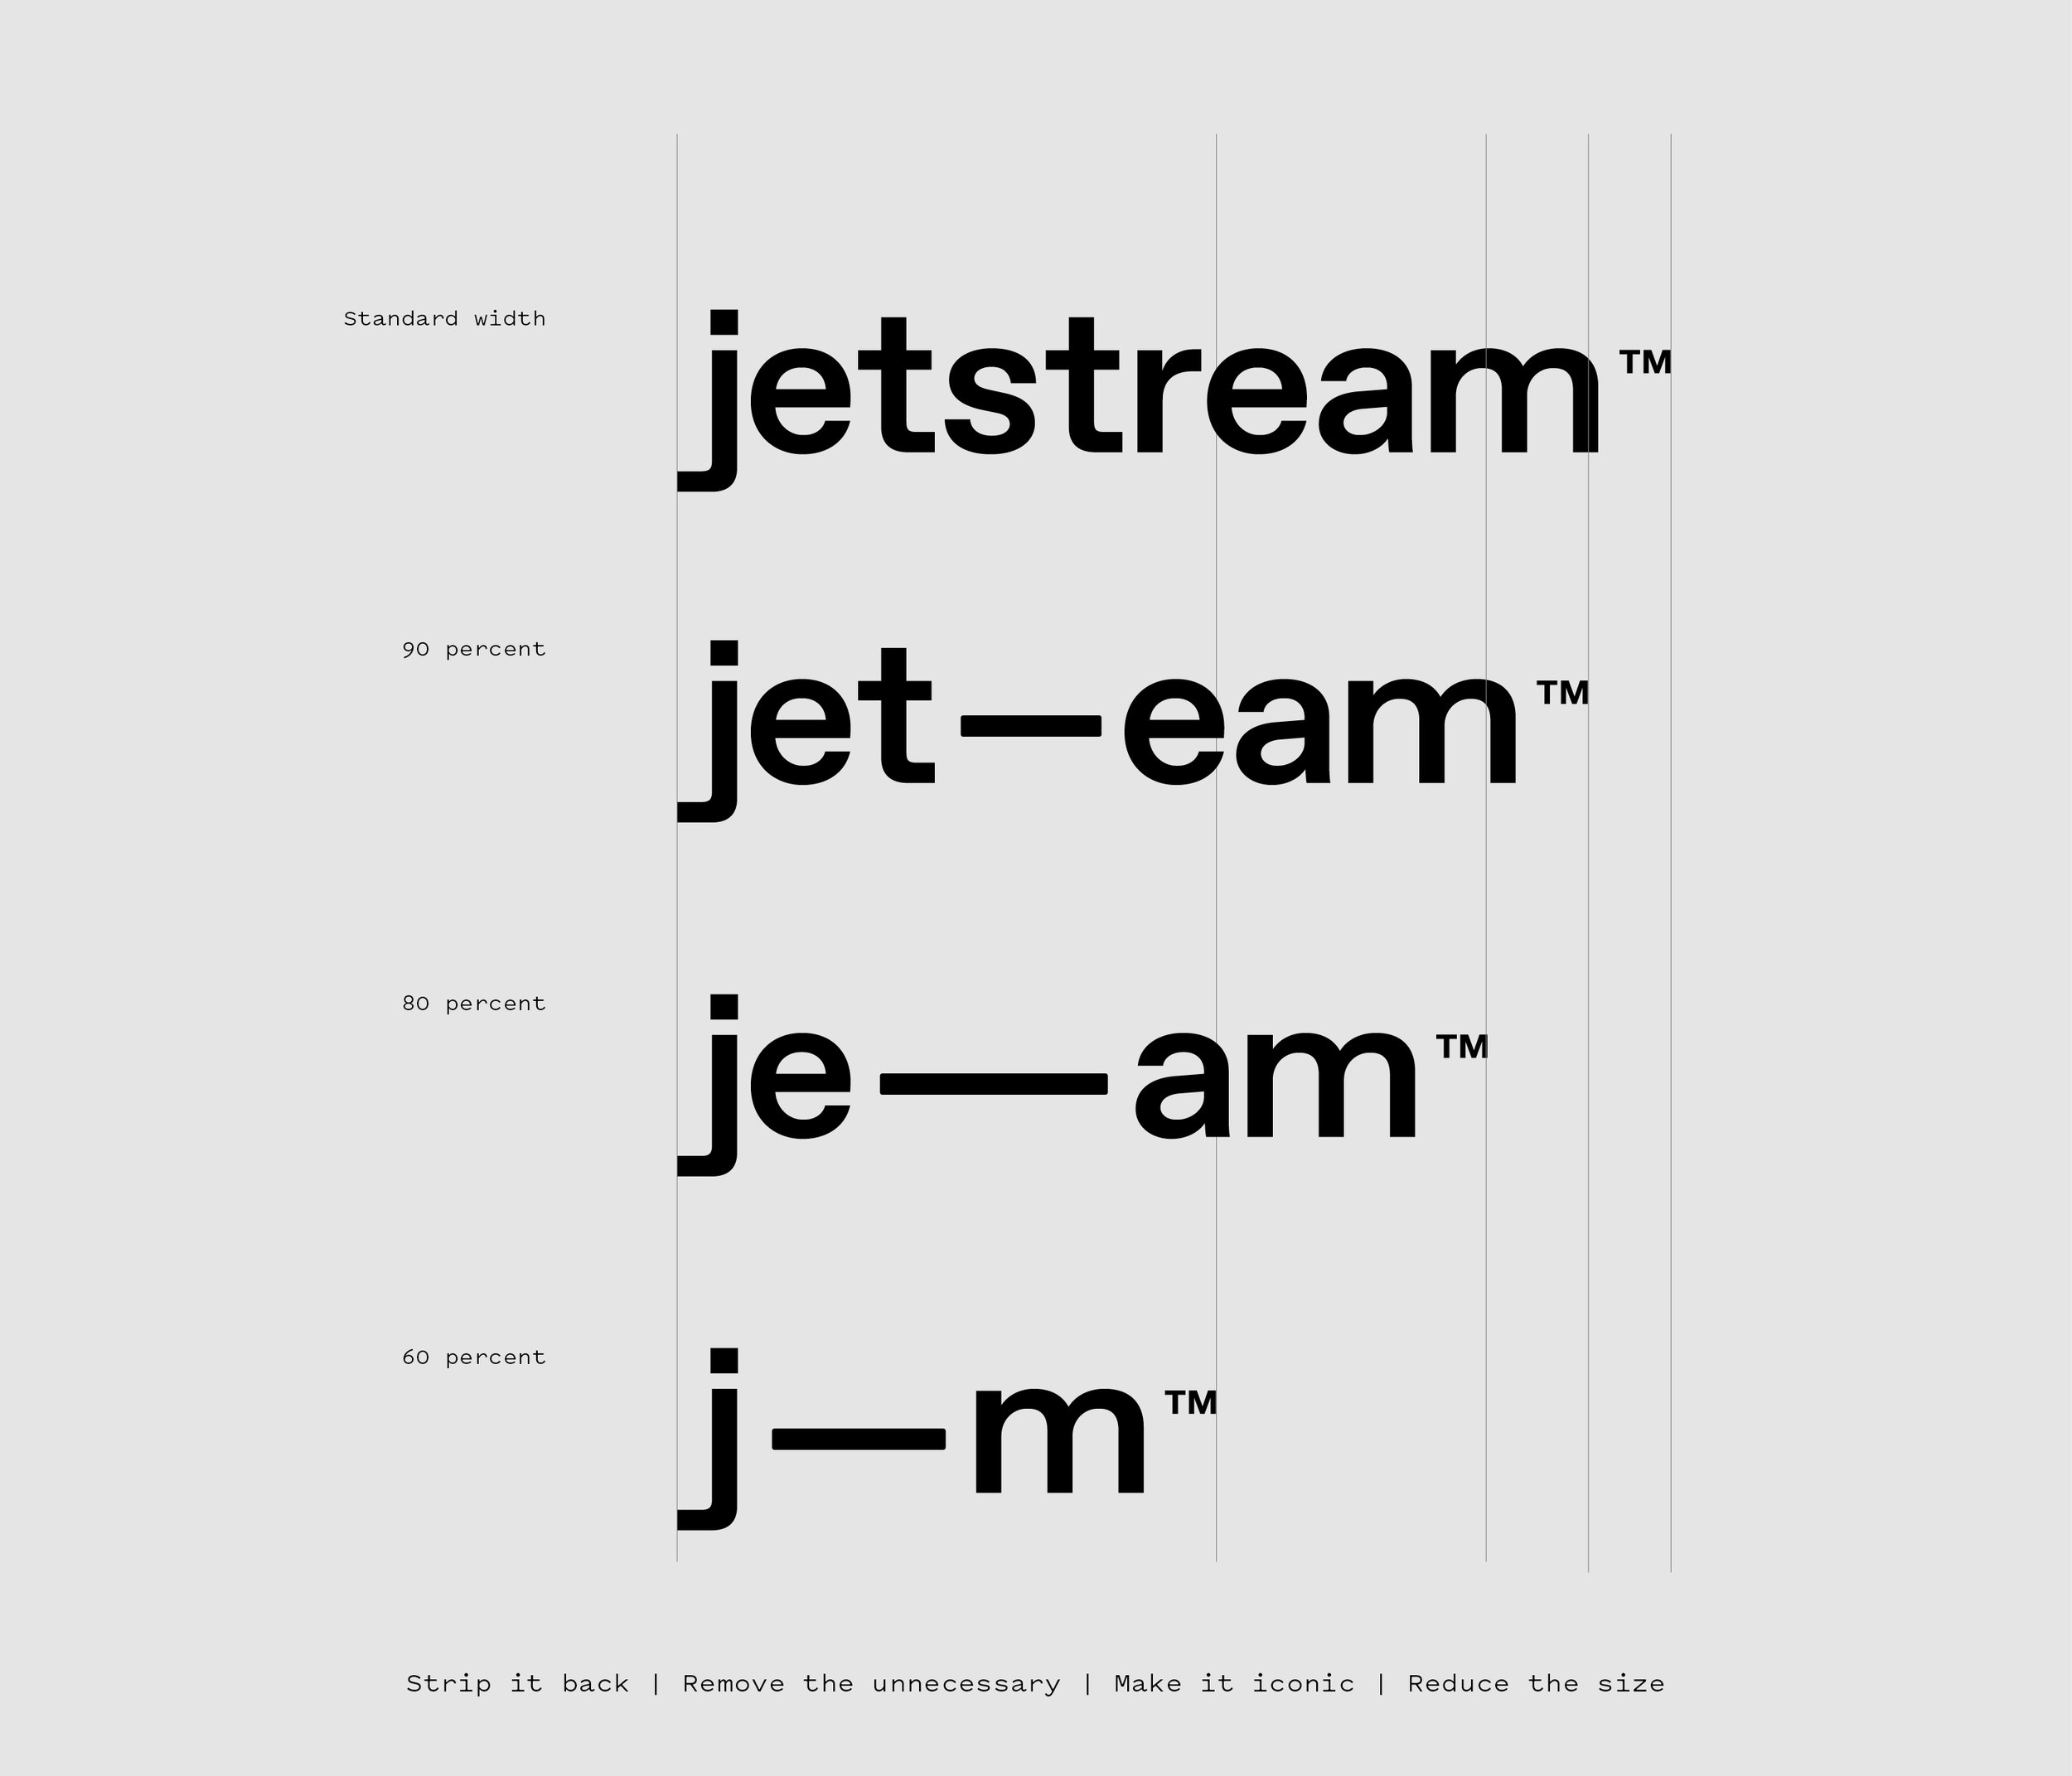 Jetstream — exploration